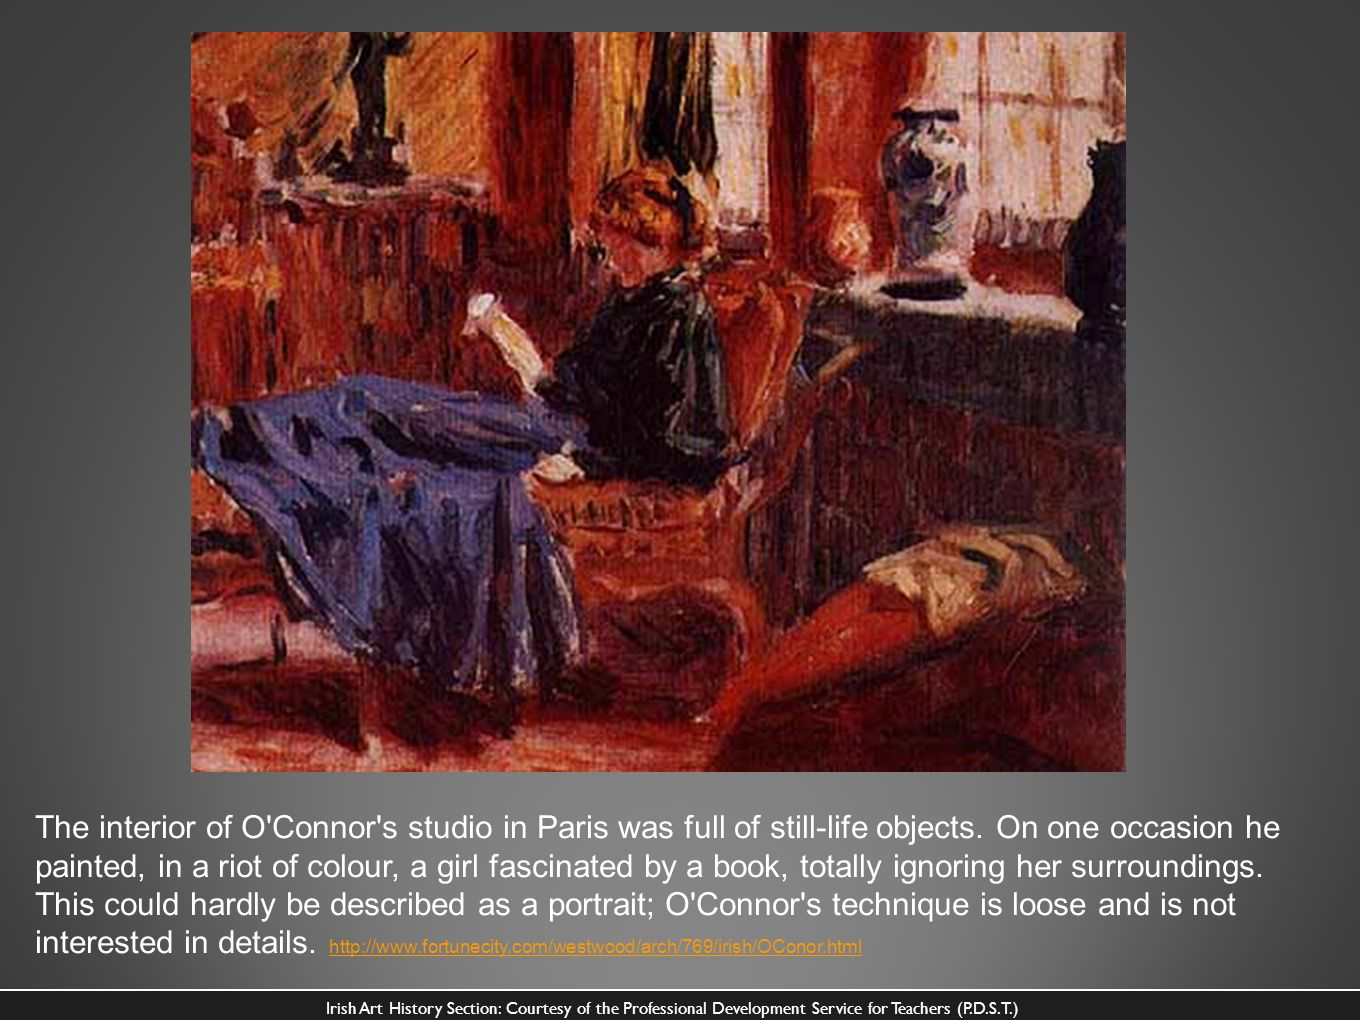 The interior of O Connor s studio in Paris was full of still-life objects. On one occasion he painted, in a riot of colour, a girl fascinated by a book, totally ignoring her surroundings. This could hardly be described as a portrait; O Connor s technique is loose and is not interested in details. http://www.fortunecity.com/westwood/arch/769/irish/OConor.html